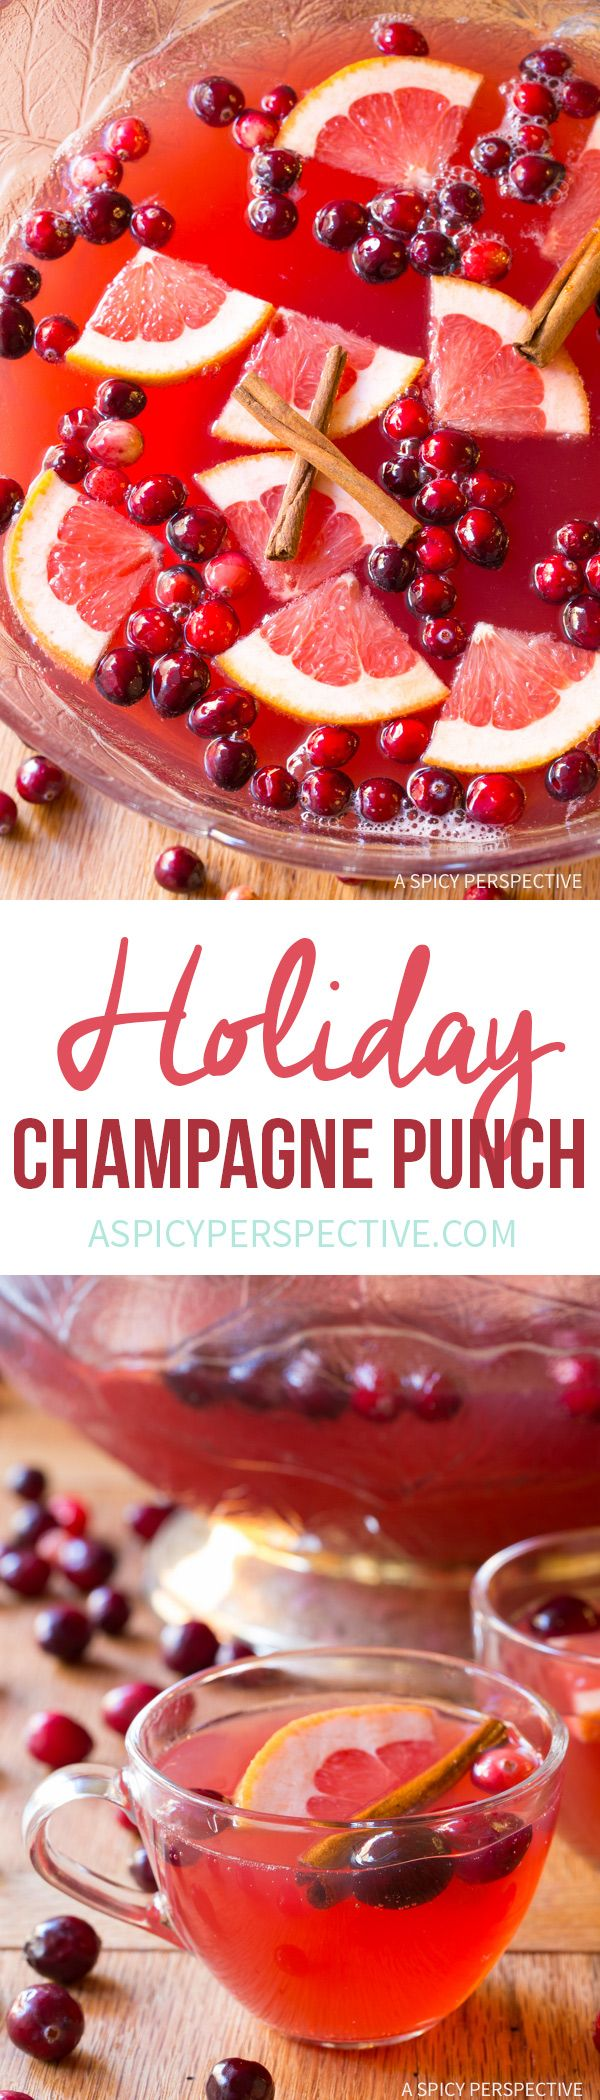 Sparkling Holiday Champagne Punch Recipe on ASpicyPerspective.com #newyearseve #christmas